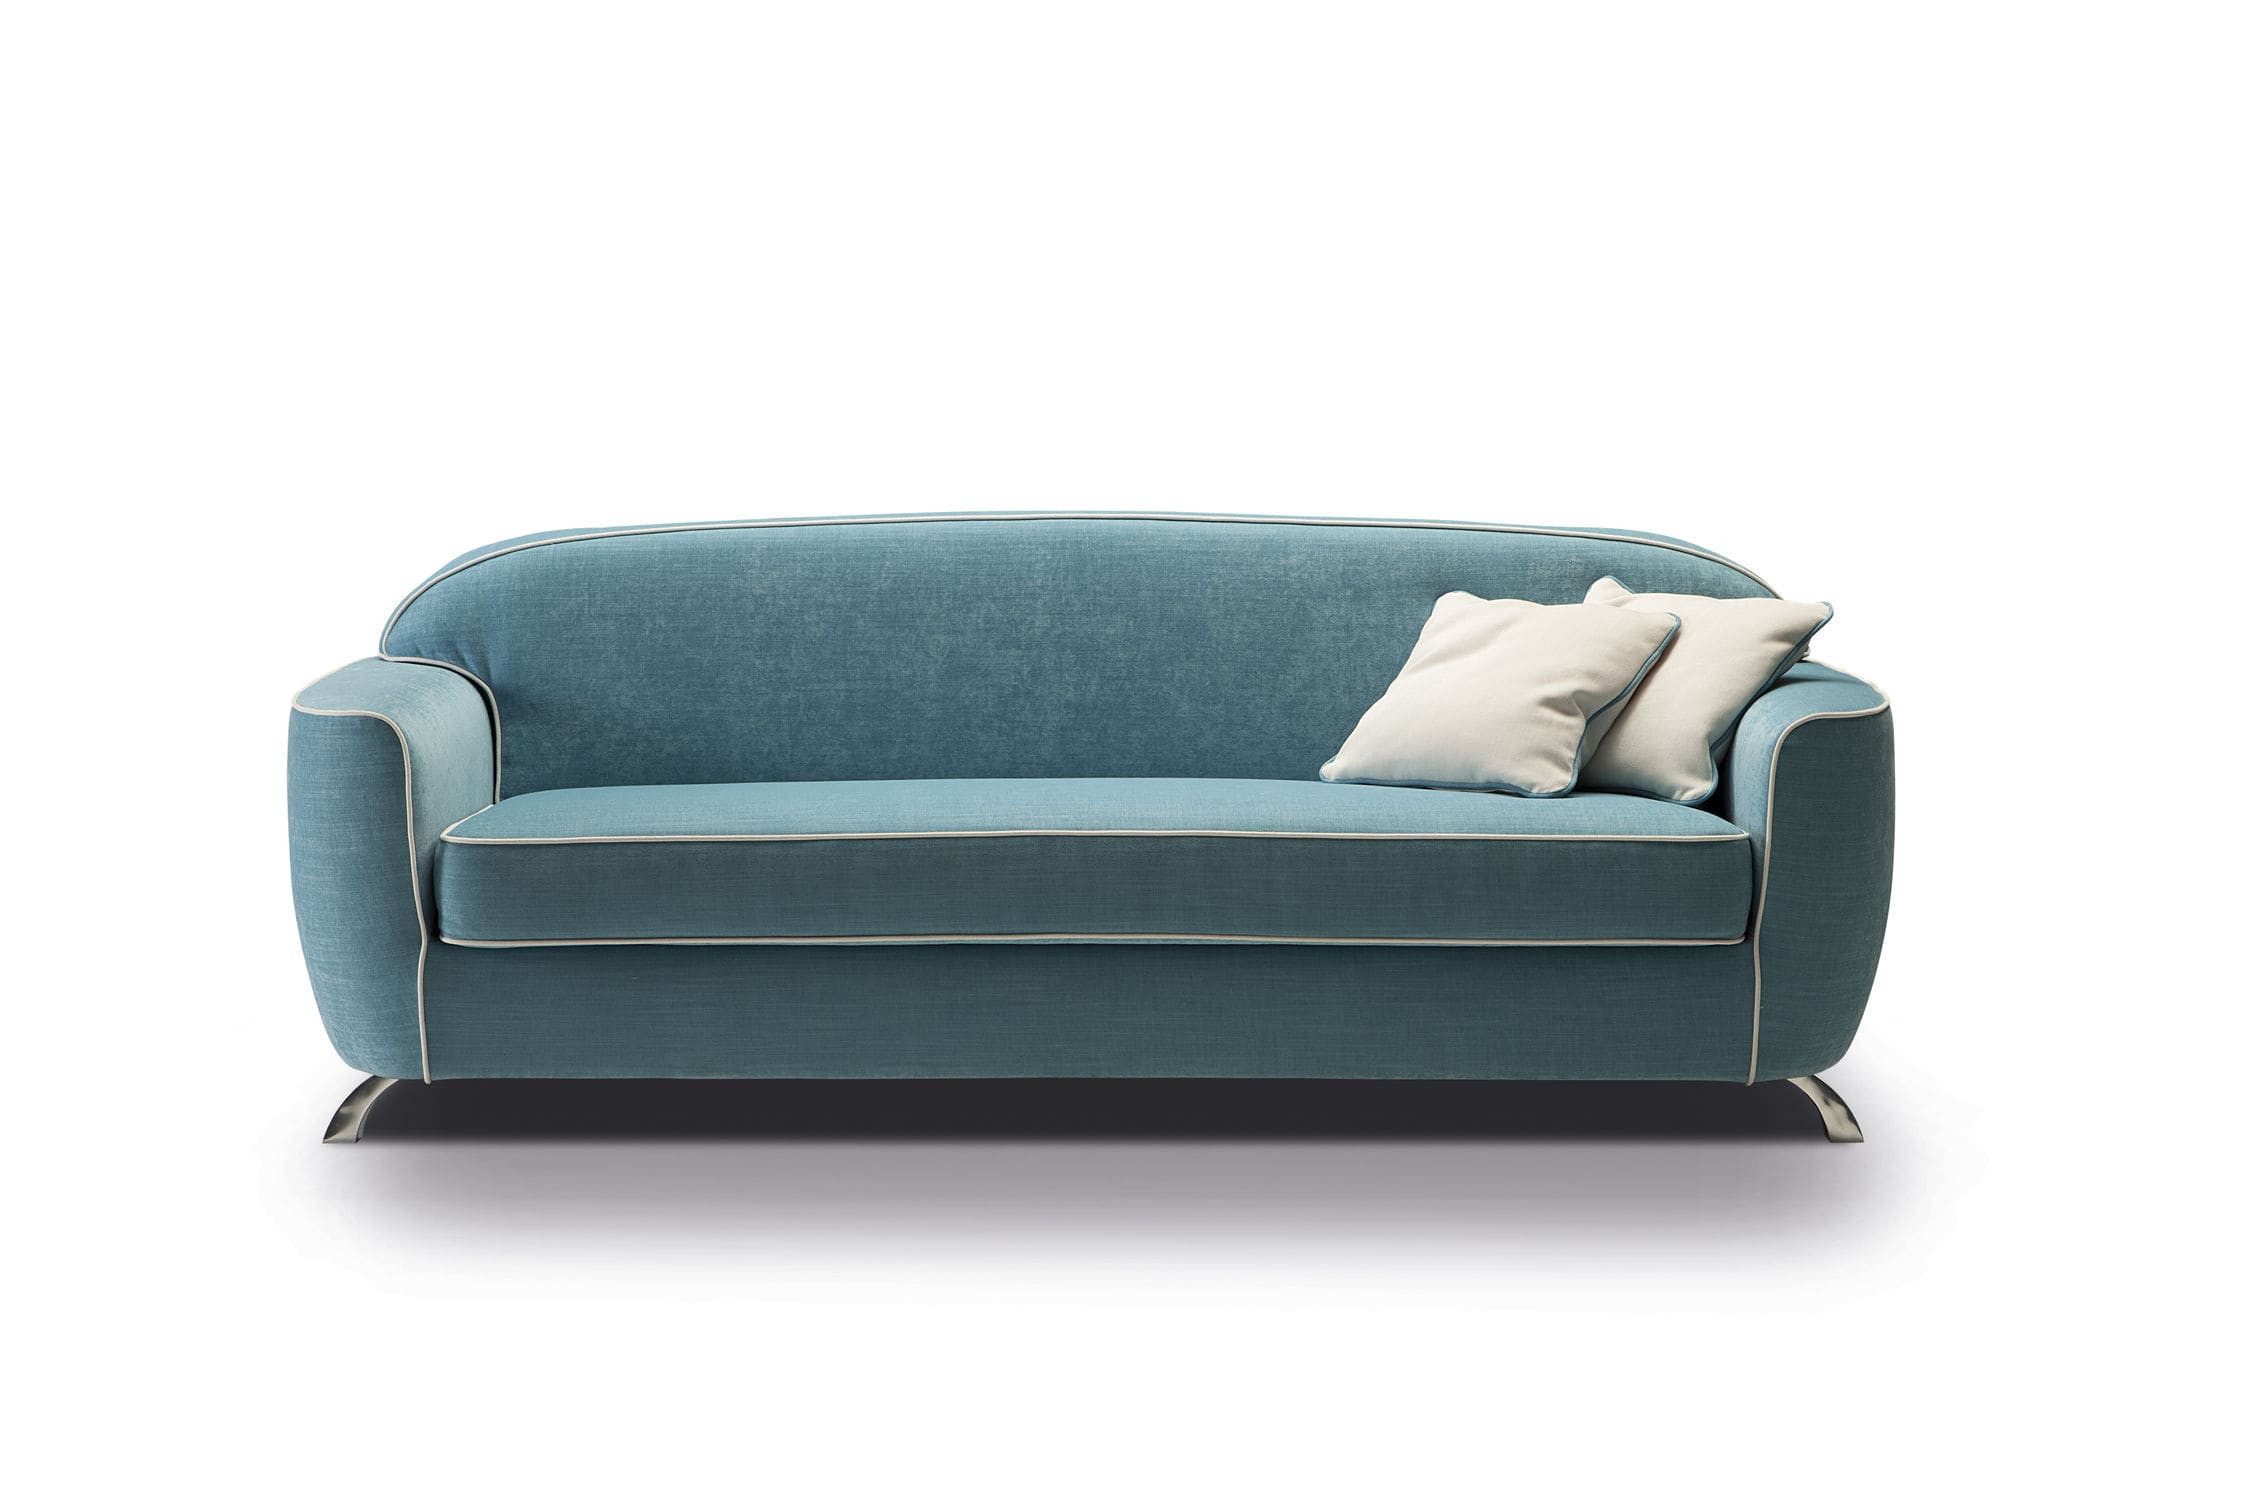 Sofa beds with removable cover ... sofa bed / contemporary / fabric / with washable removable cover ... LXFCKNW